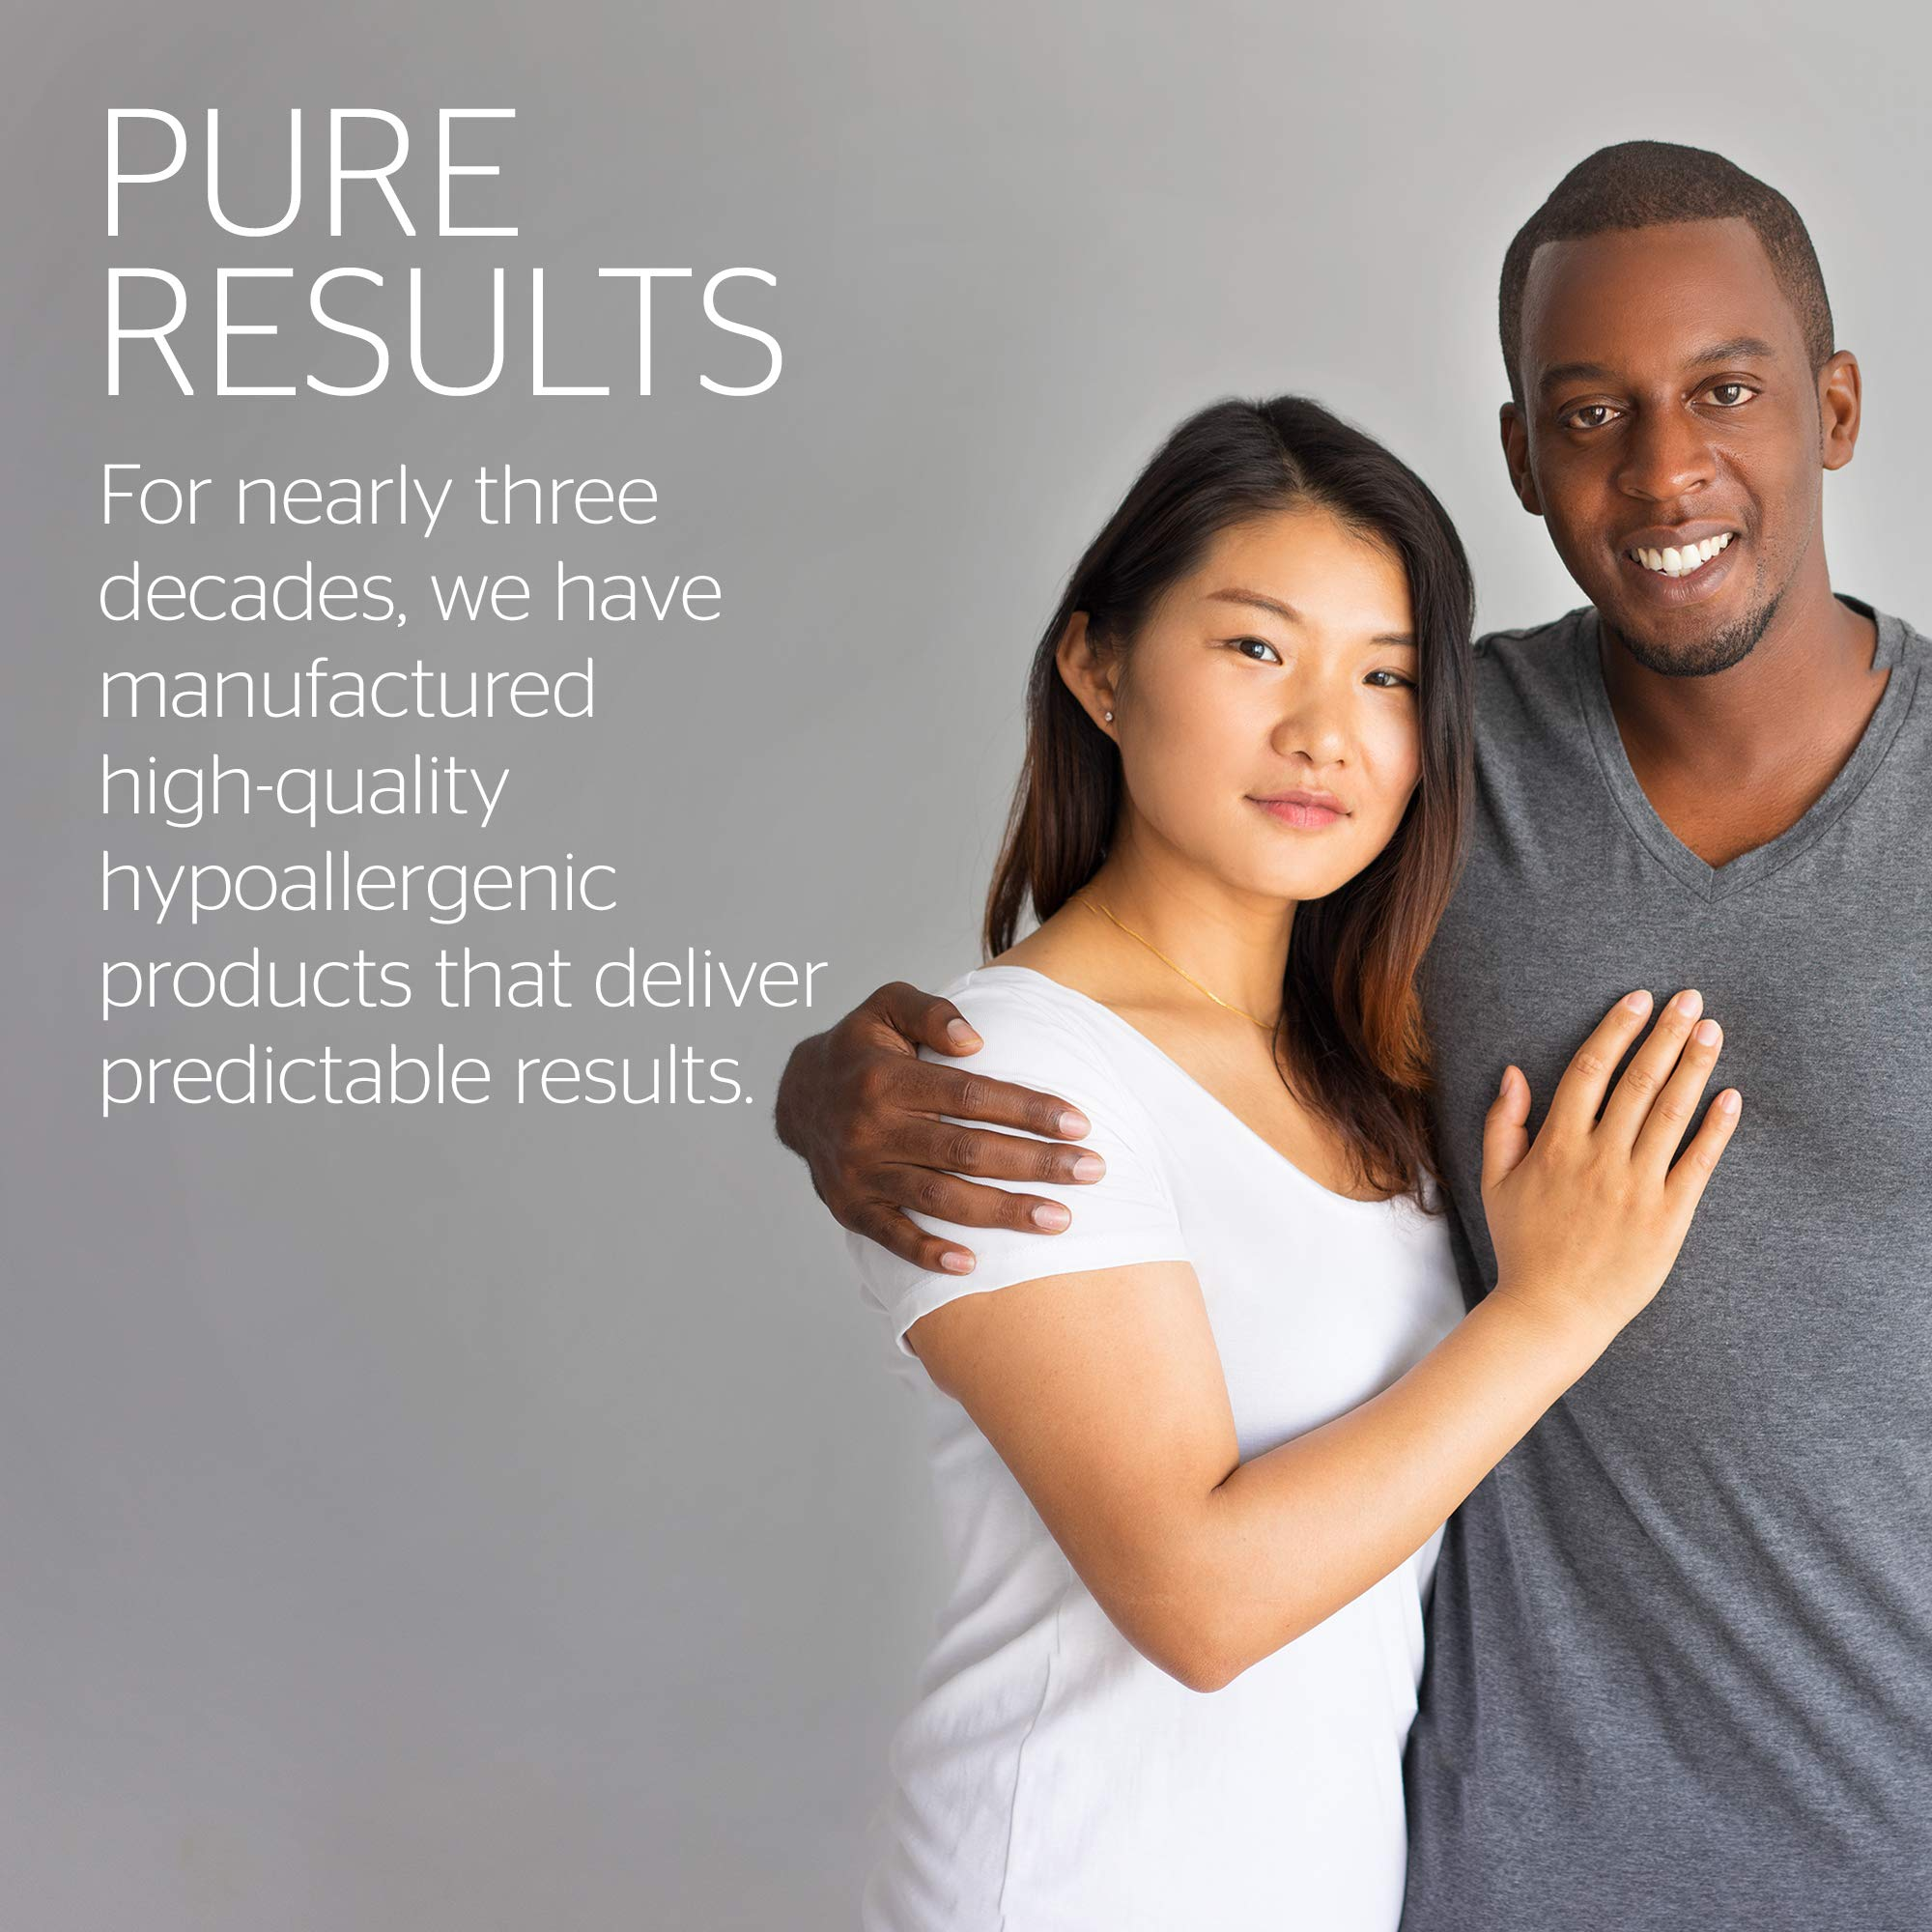 Pure Encapsulations - Ginkgo 50 160 mg - Hypoallergenic Ginkgo Biloba Extract - 120 Capsules by Pure Encapsulations (Image #9)